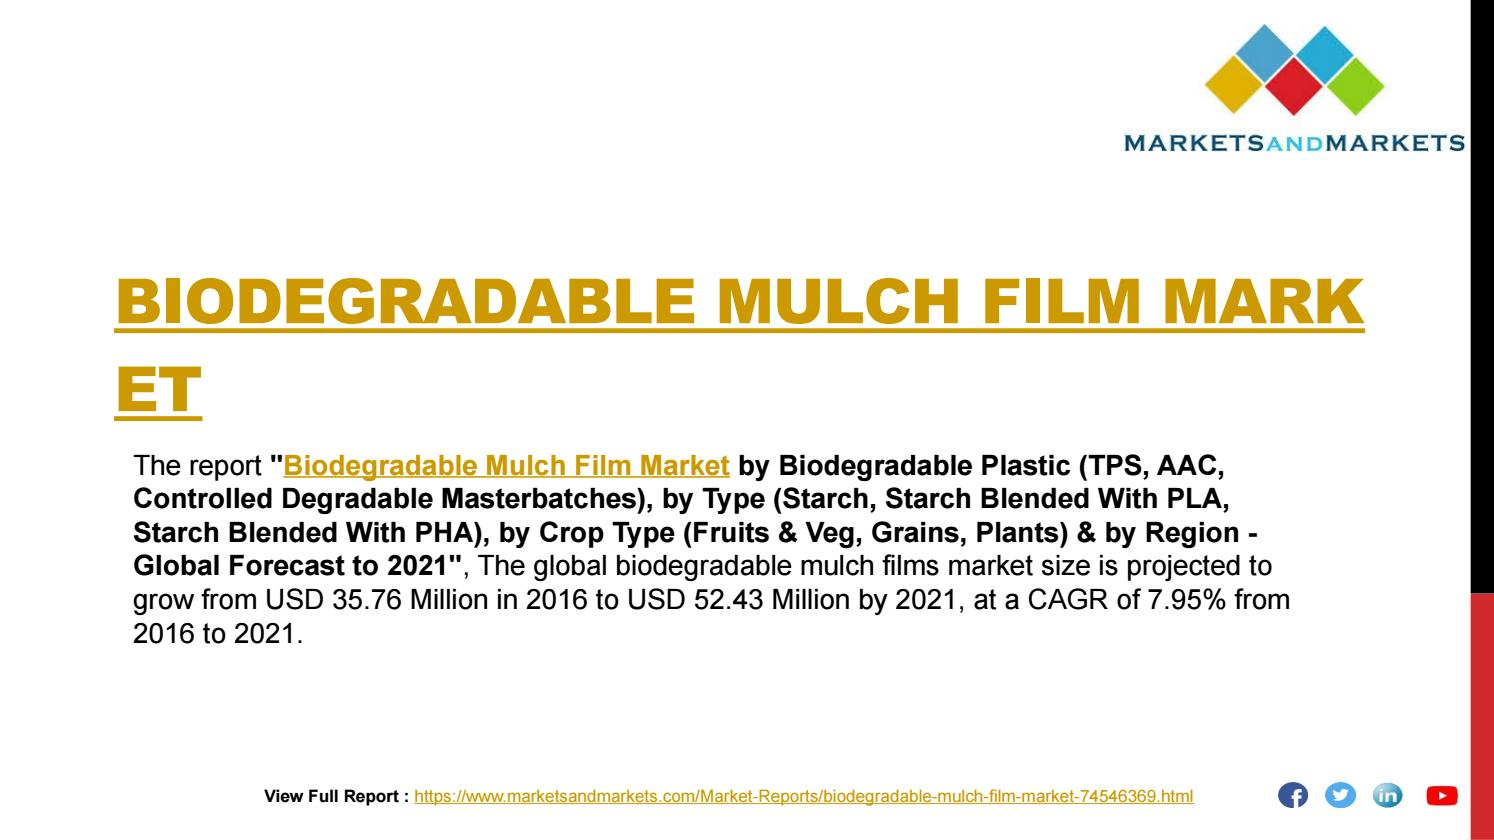 Biodegradable Mulch Film Market worth 52 43 Million USD by